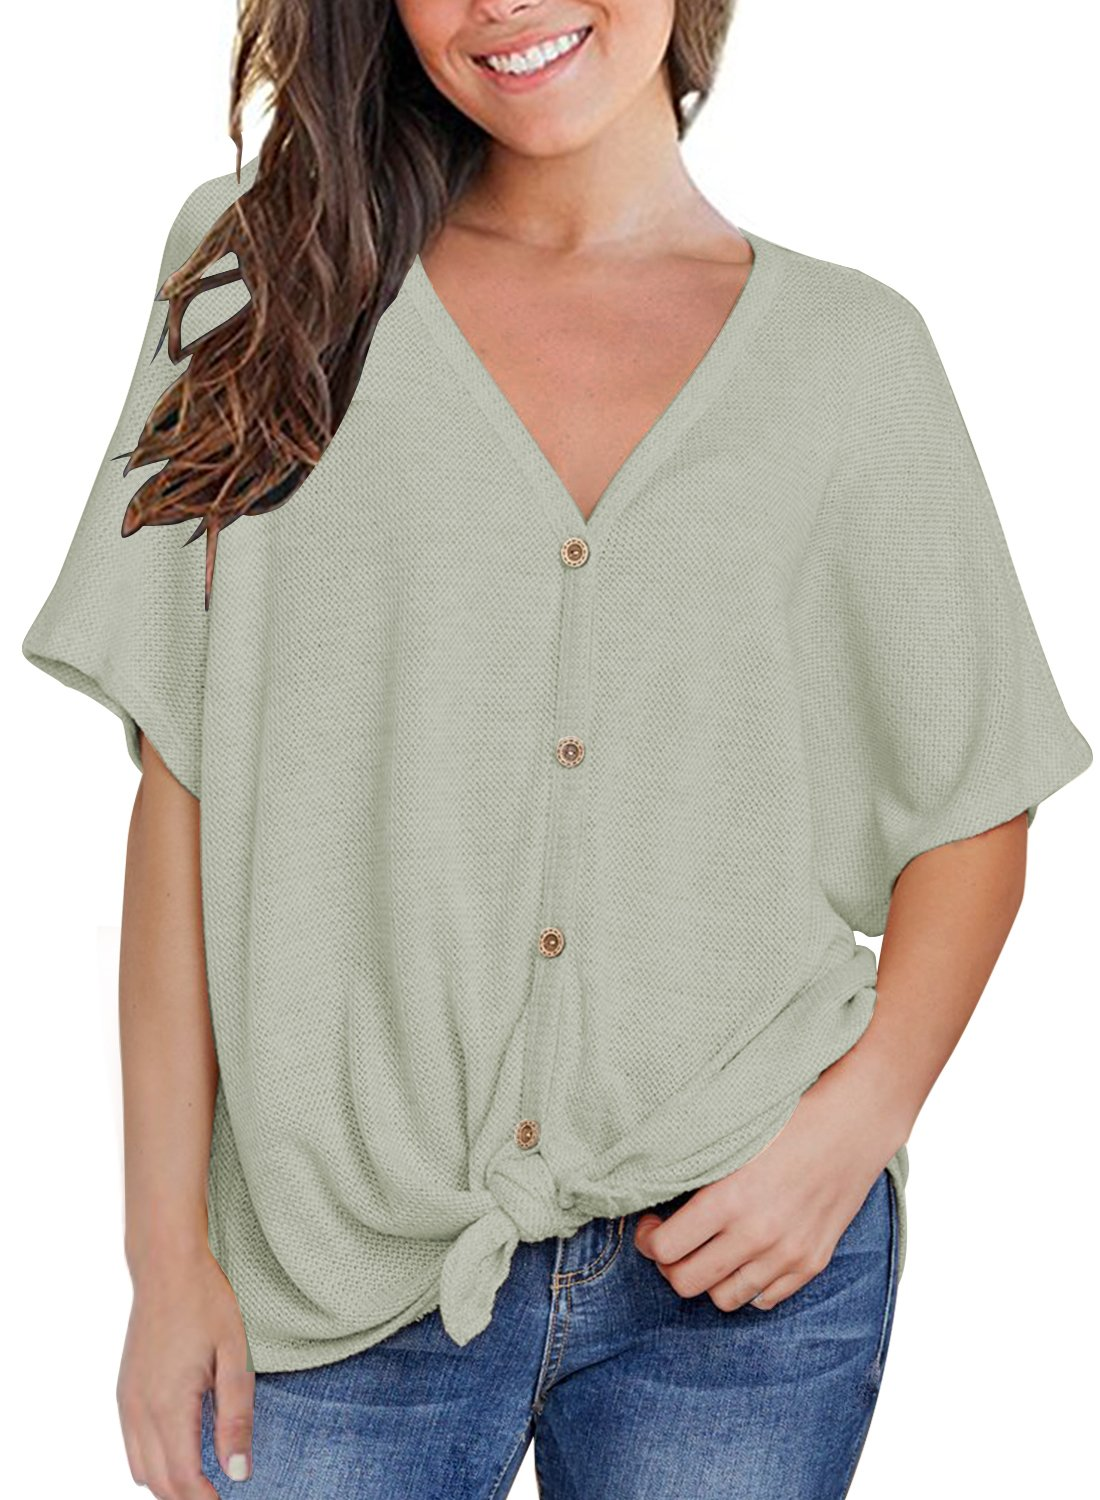 MIHOLL Womens Loose Blouse Short Sleeve V Neck Button Down T Shirts Tie Front Knot Casual Tops (Medium, Light Green)